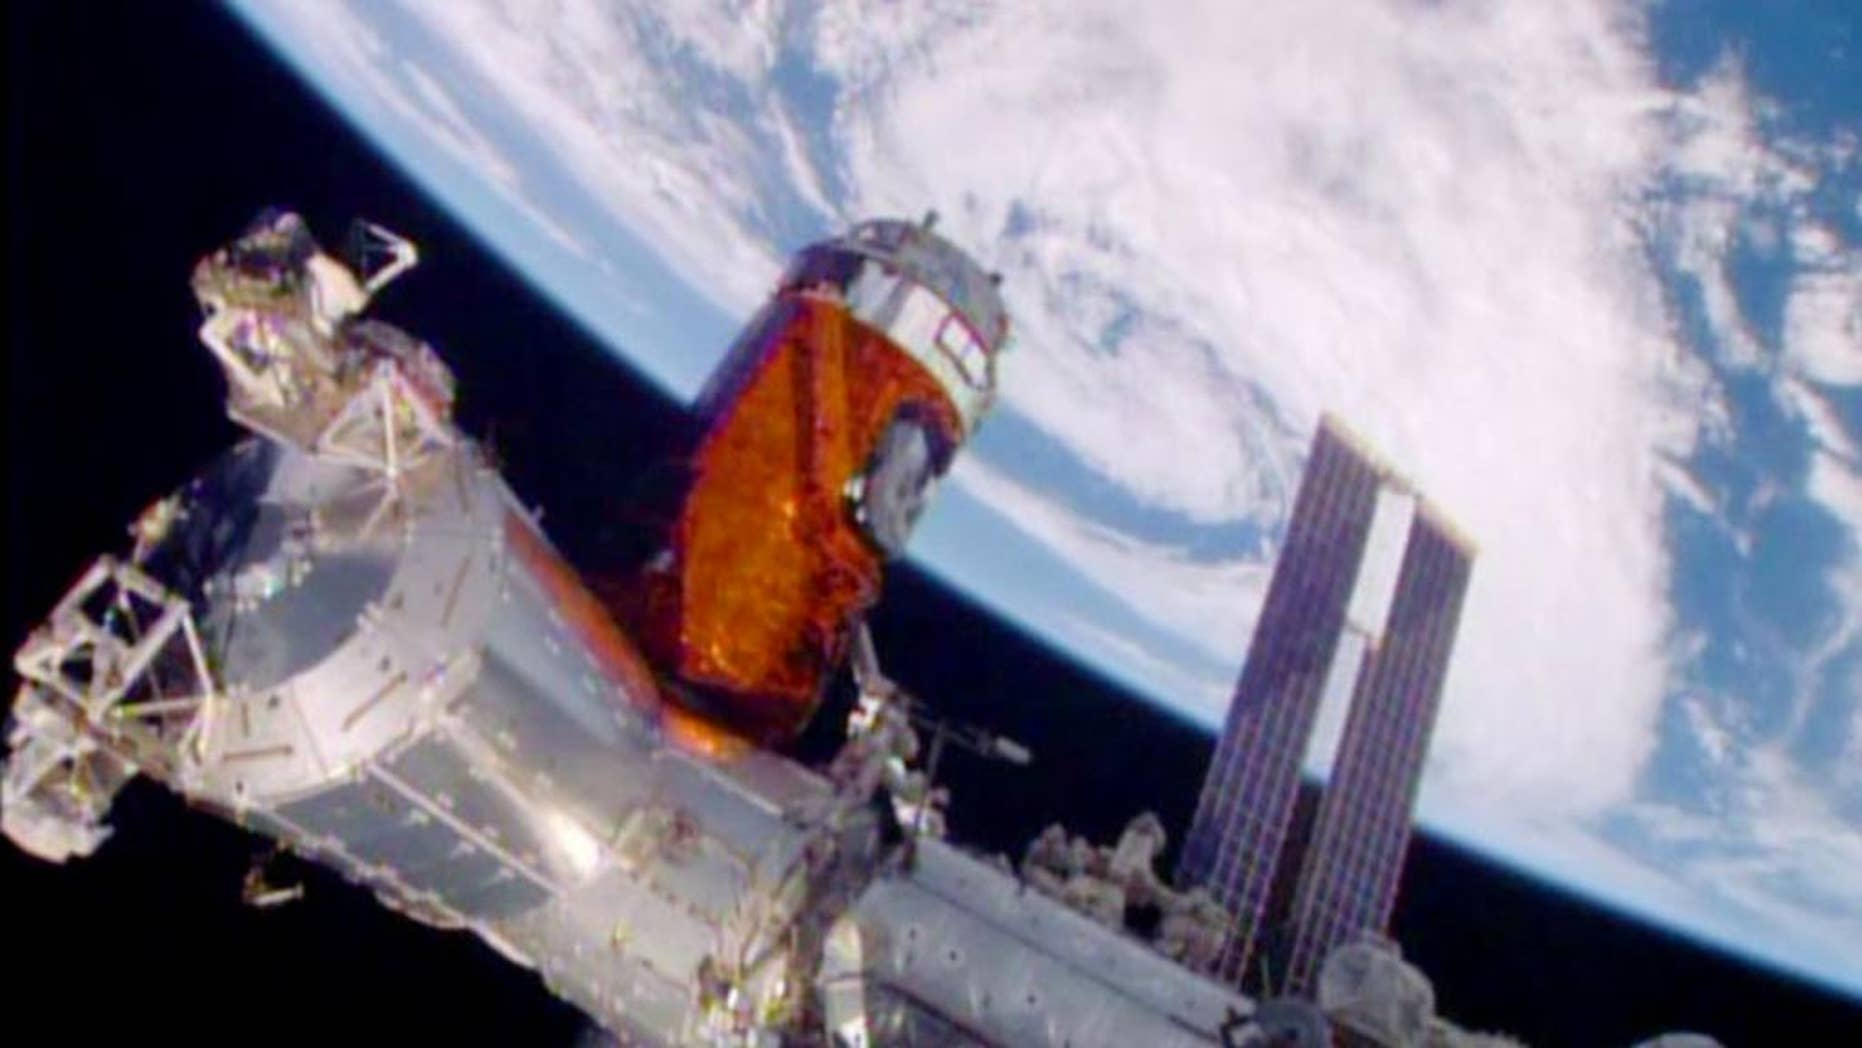 In a photo provided by NASA, a cargo ship from a Japanese company is bolted into place on the International Space Station Monday, Aug. 24, 2015. A Japanese company known for its whiskey and other alcoholic beverages included five types of distilled spirits in the cargo ship that arrived at the space station Monday. The samples will spend at least a year in orbit to see if alcoholic beverages mellow the same in space as they do on Earth. The station's big robotic arm, operated by Japanese astronaut Kimiya Yui, grabbed onto the supply craft launched Wednesday by his homeland. Flight controllers helped anchor it down. NASA also has considerable equipment aboard the supply capsule. (NASA via AP)